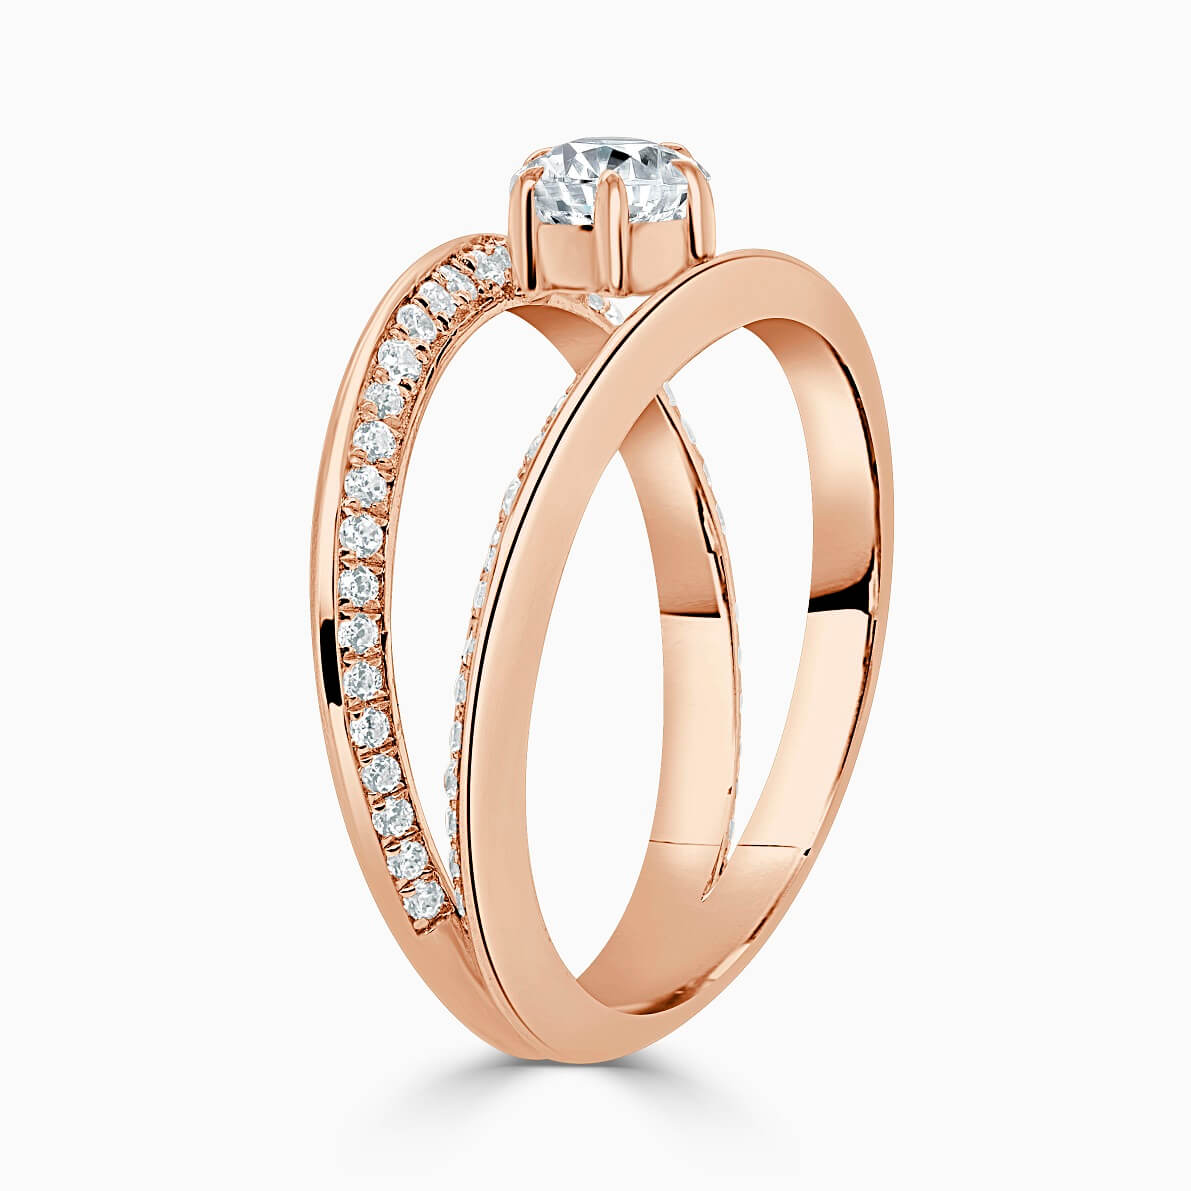 18ct Rose Gold Pear Shape 6 Claw With Double Pave Band Engagement Ring